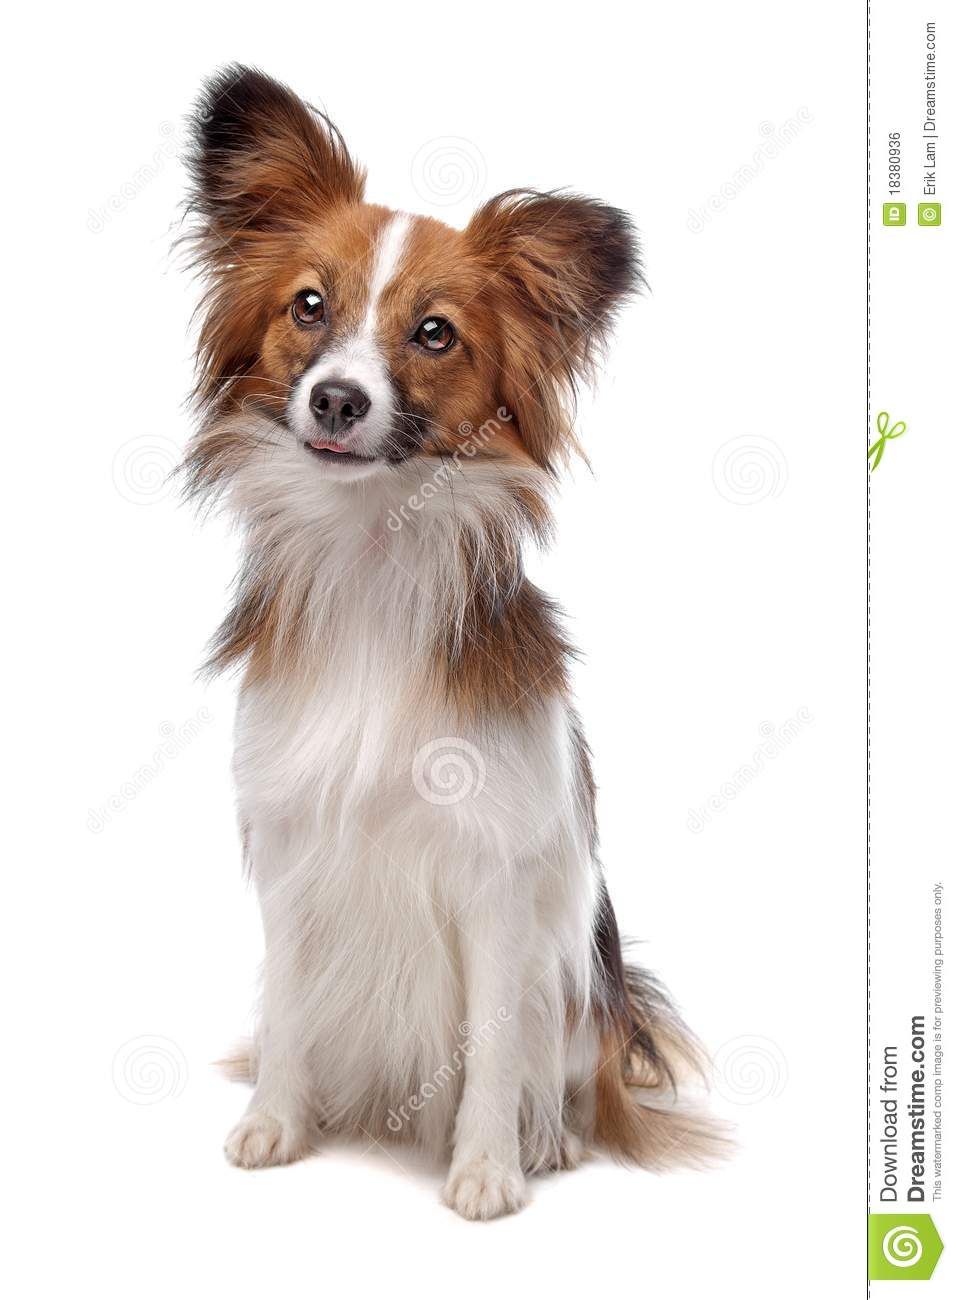 Beautiful Purebred Papillon Butterfly Dog Isolated On White Studio